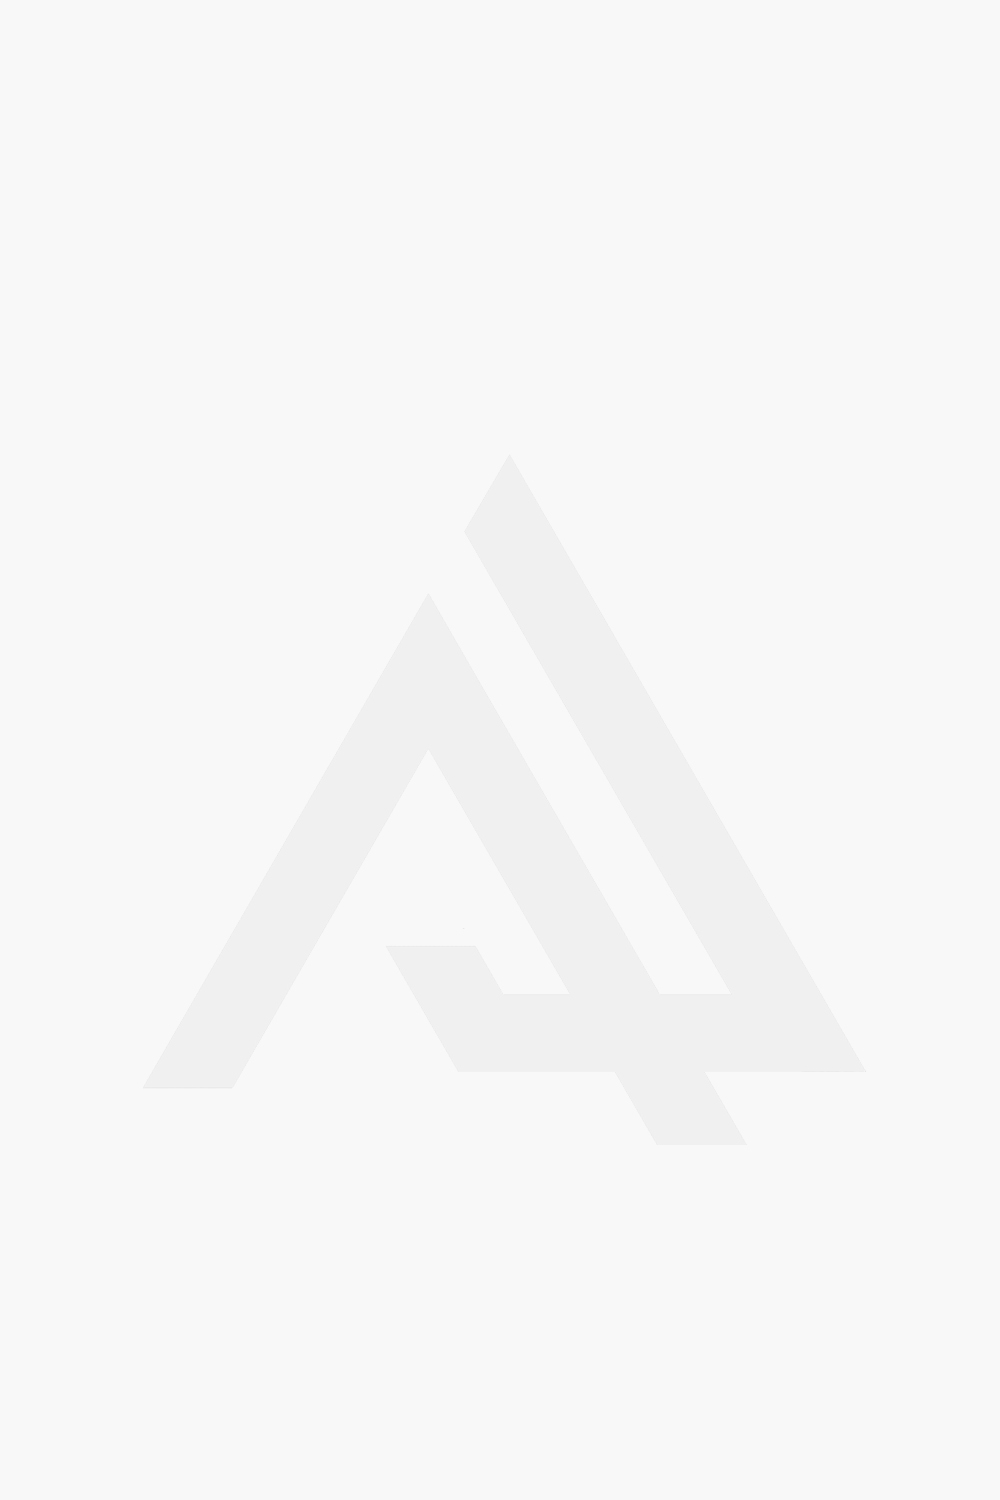 Poppy Cushion Covers, Set of 2, Yellow, Blue & White